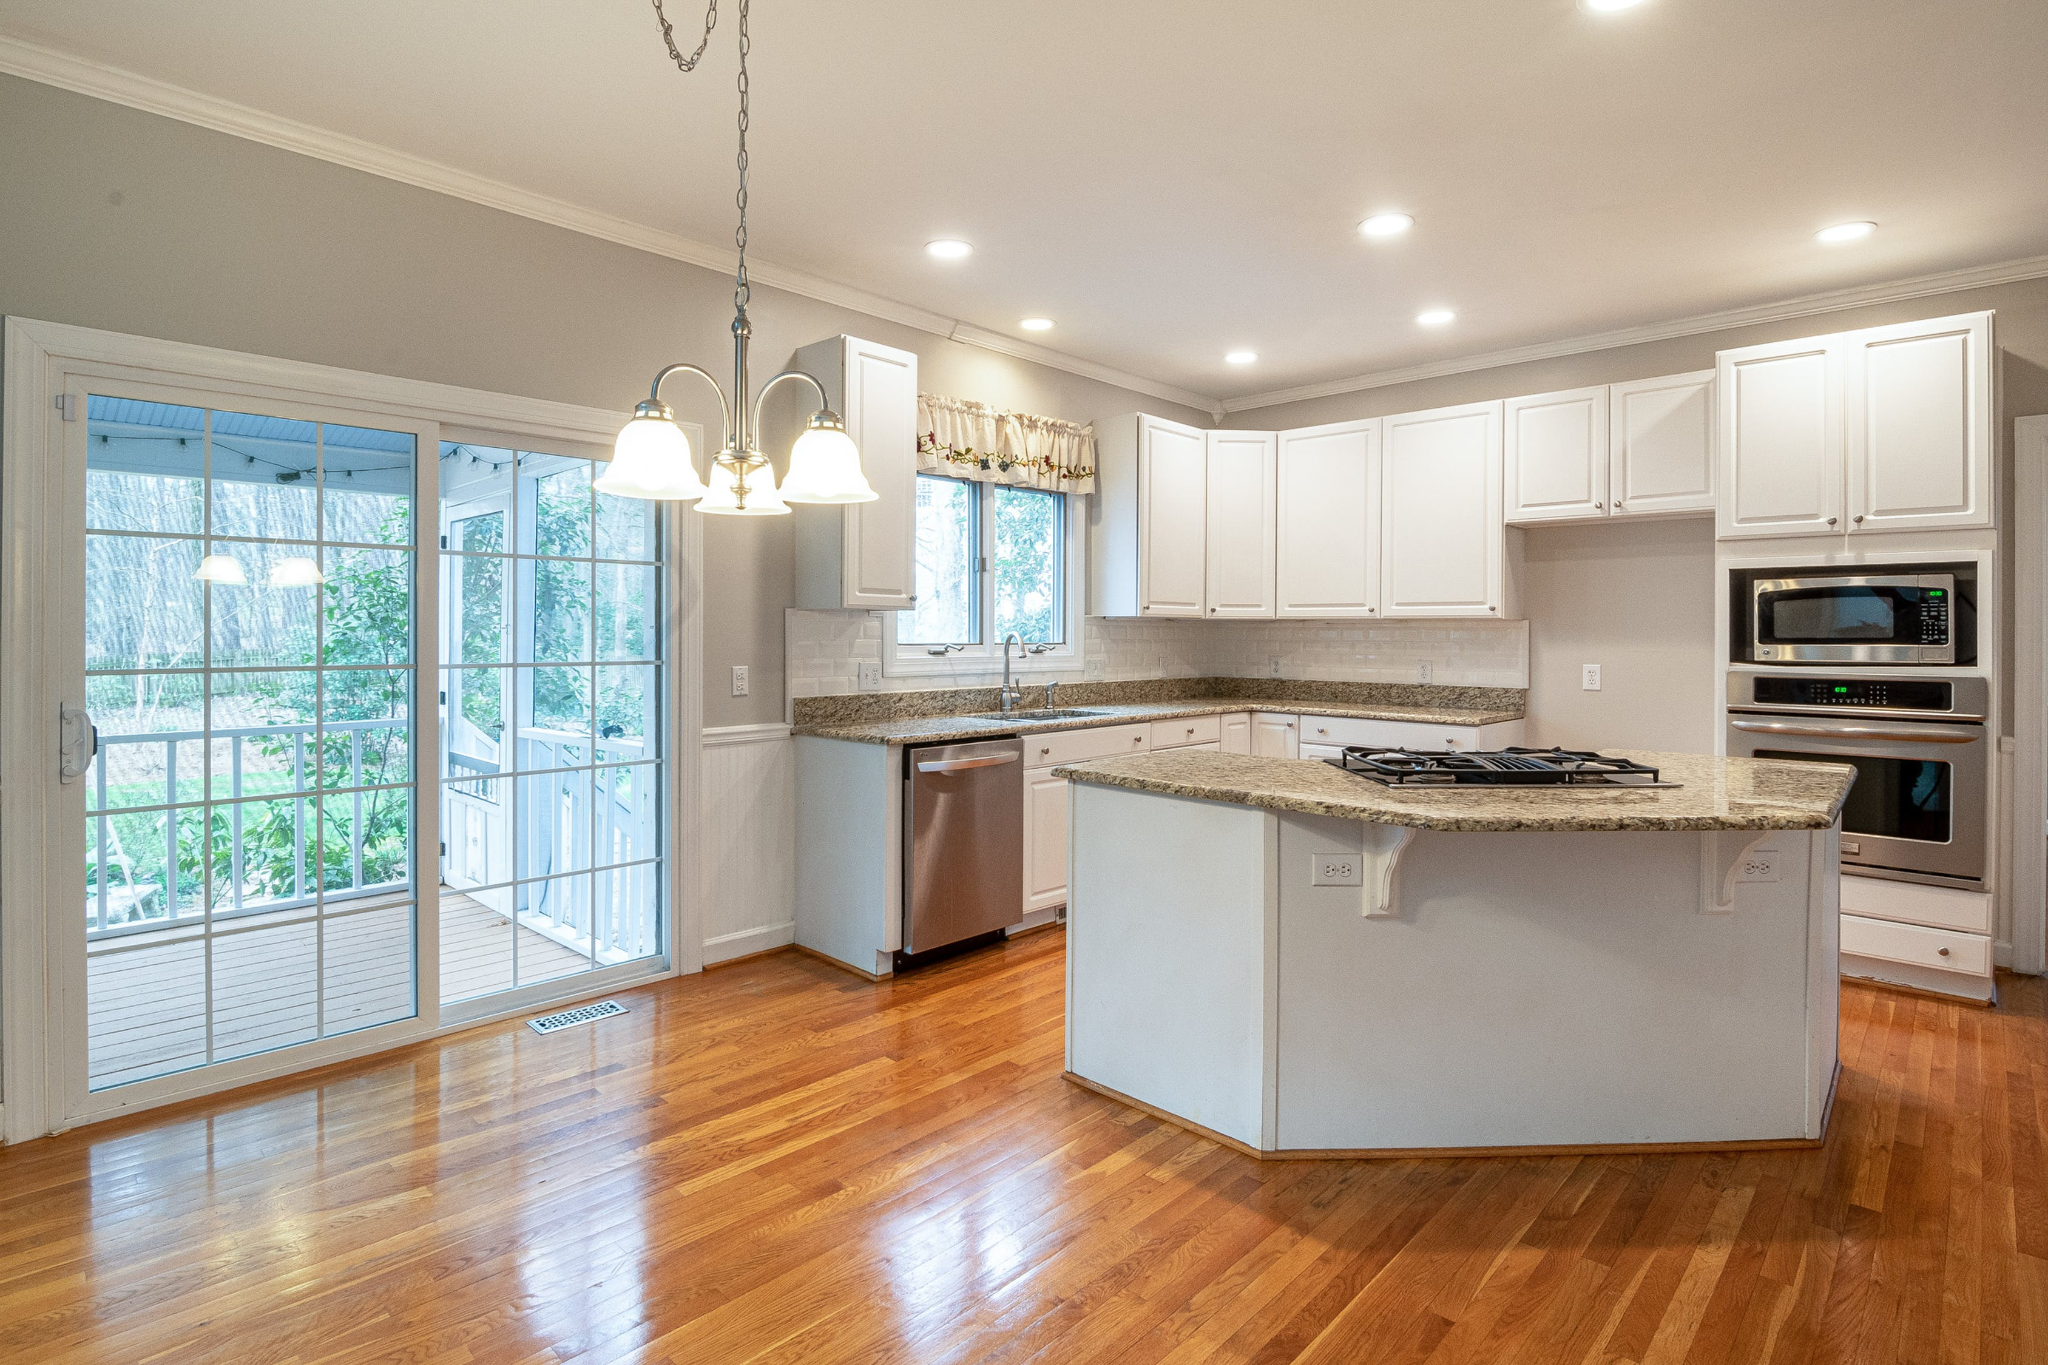 White walled kitchen with vanished wooden flooring